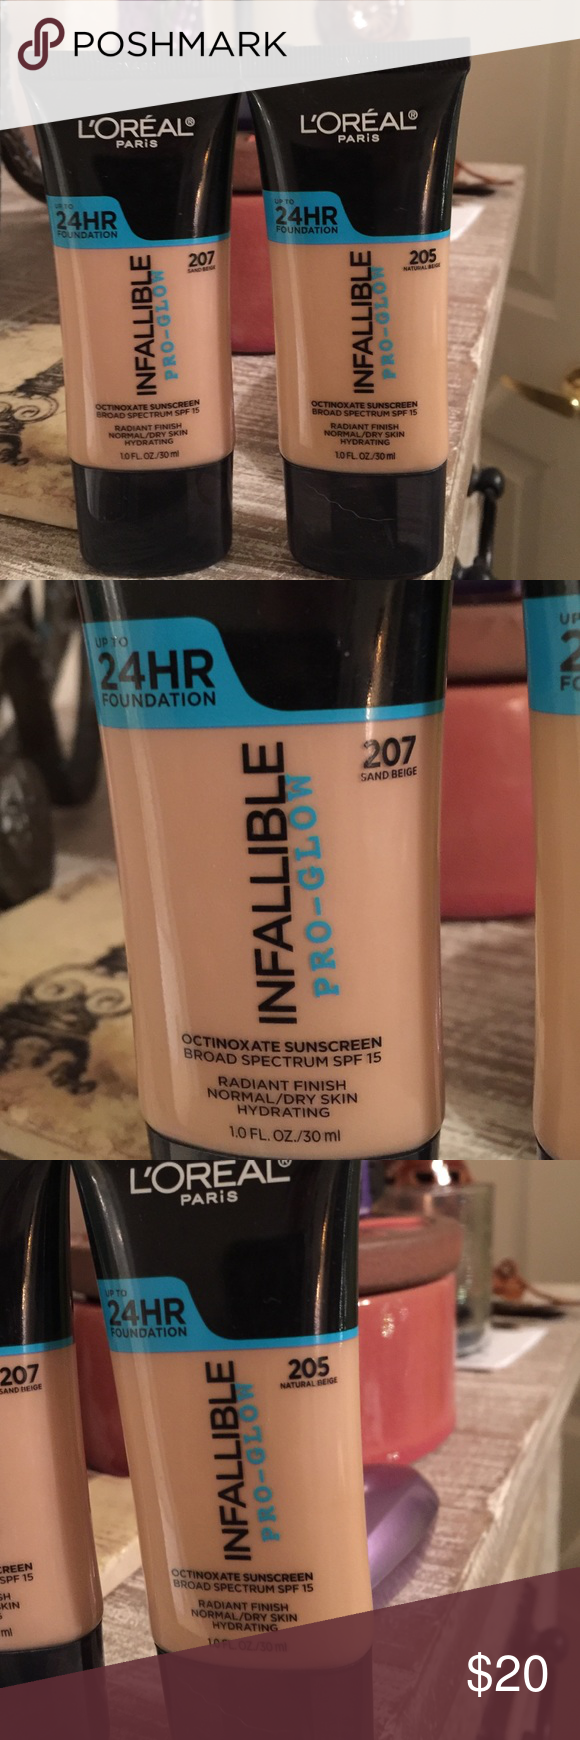 L'Oréal Infallible Pro Matte Foundation Swatched and used